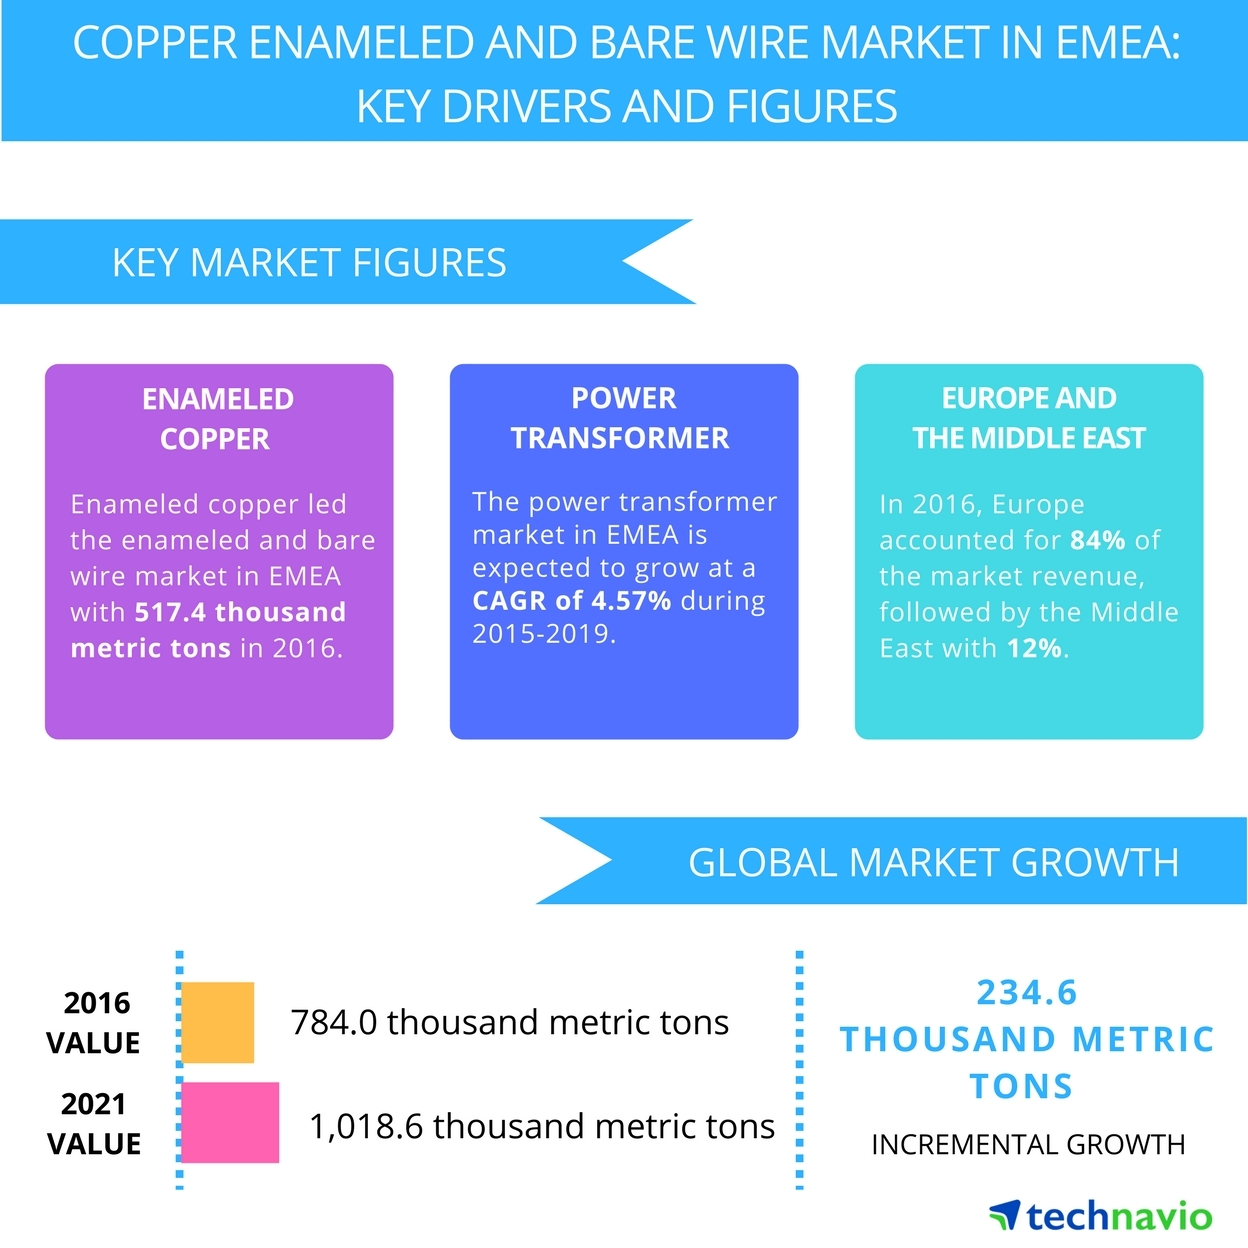 Top 3 Trends Impacting the Copper Enameled and Bare Wire Market in ...